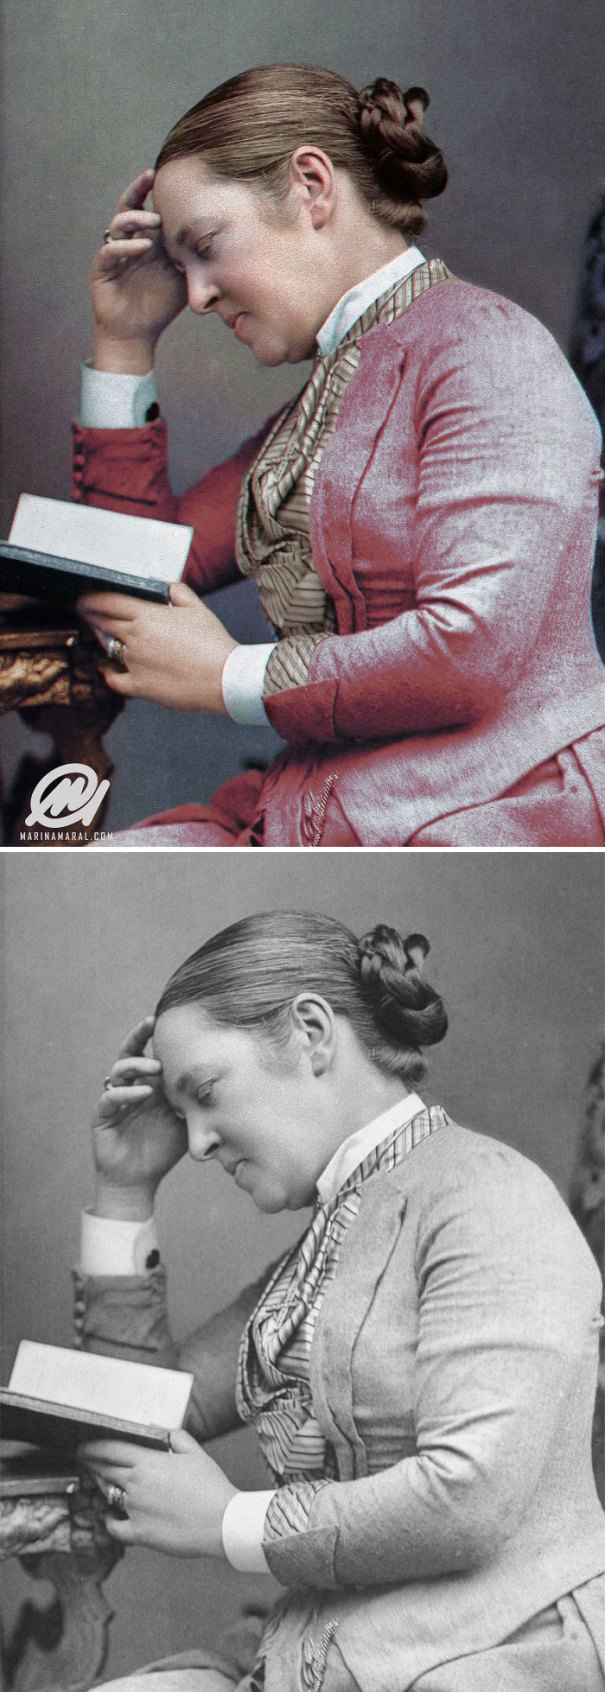 5b6d3b825eaea-colorized-historic-photos-marina-amaral-46-5b6add3d9dd47__700 This Artist Colorizes Old Black & White Photos, And They Will Change The Way People Imagine History Photography Random